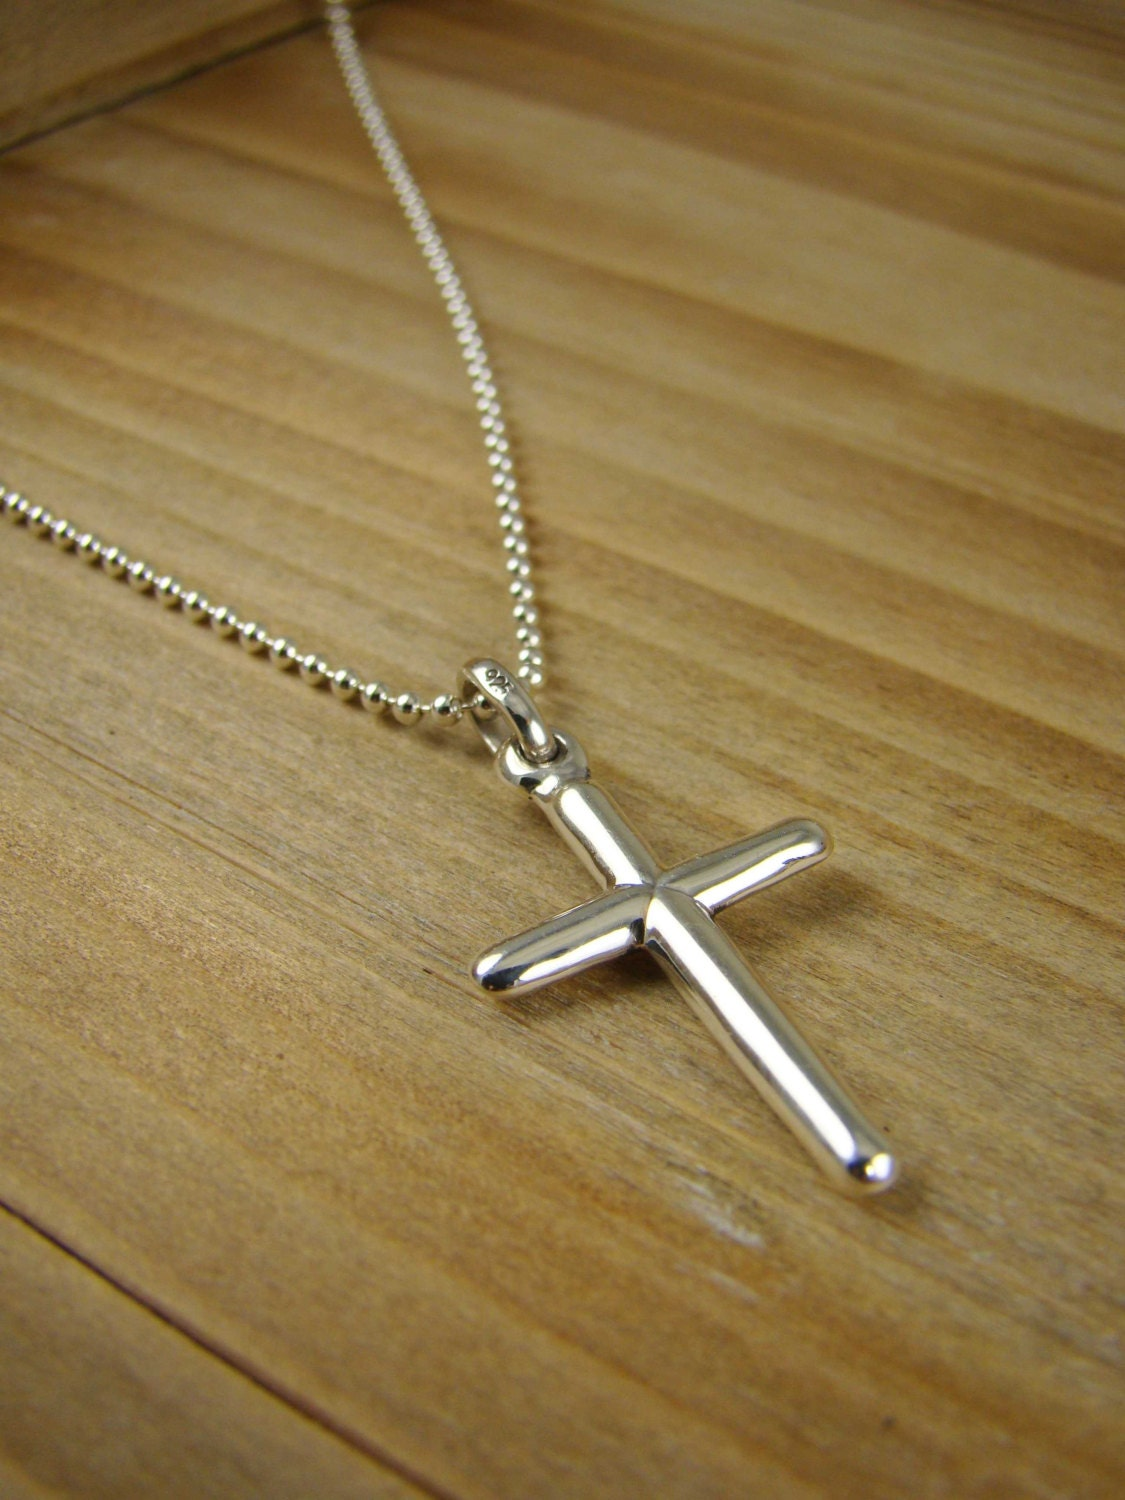 cross necklace for him cross pendant for men sterling silver. Black Bedroom Furniture Sets. Home Design Ideas